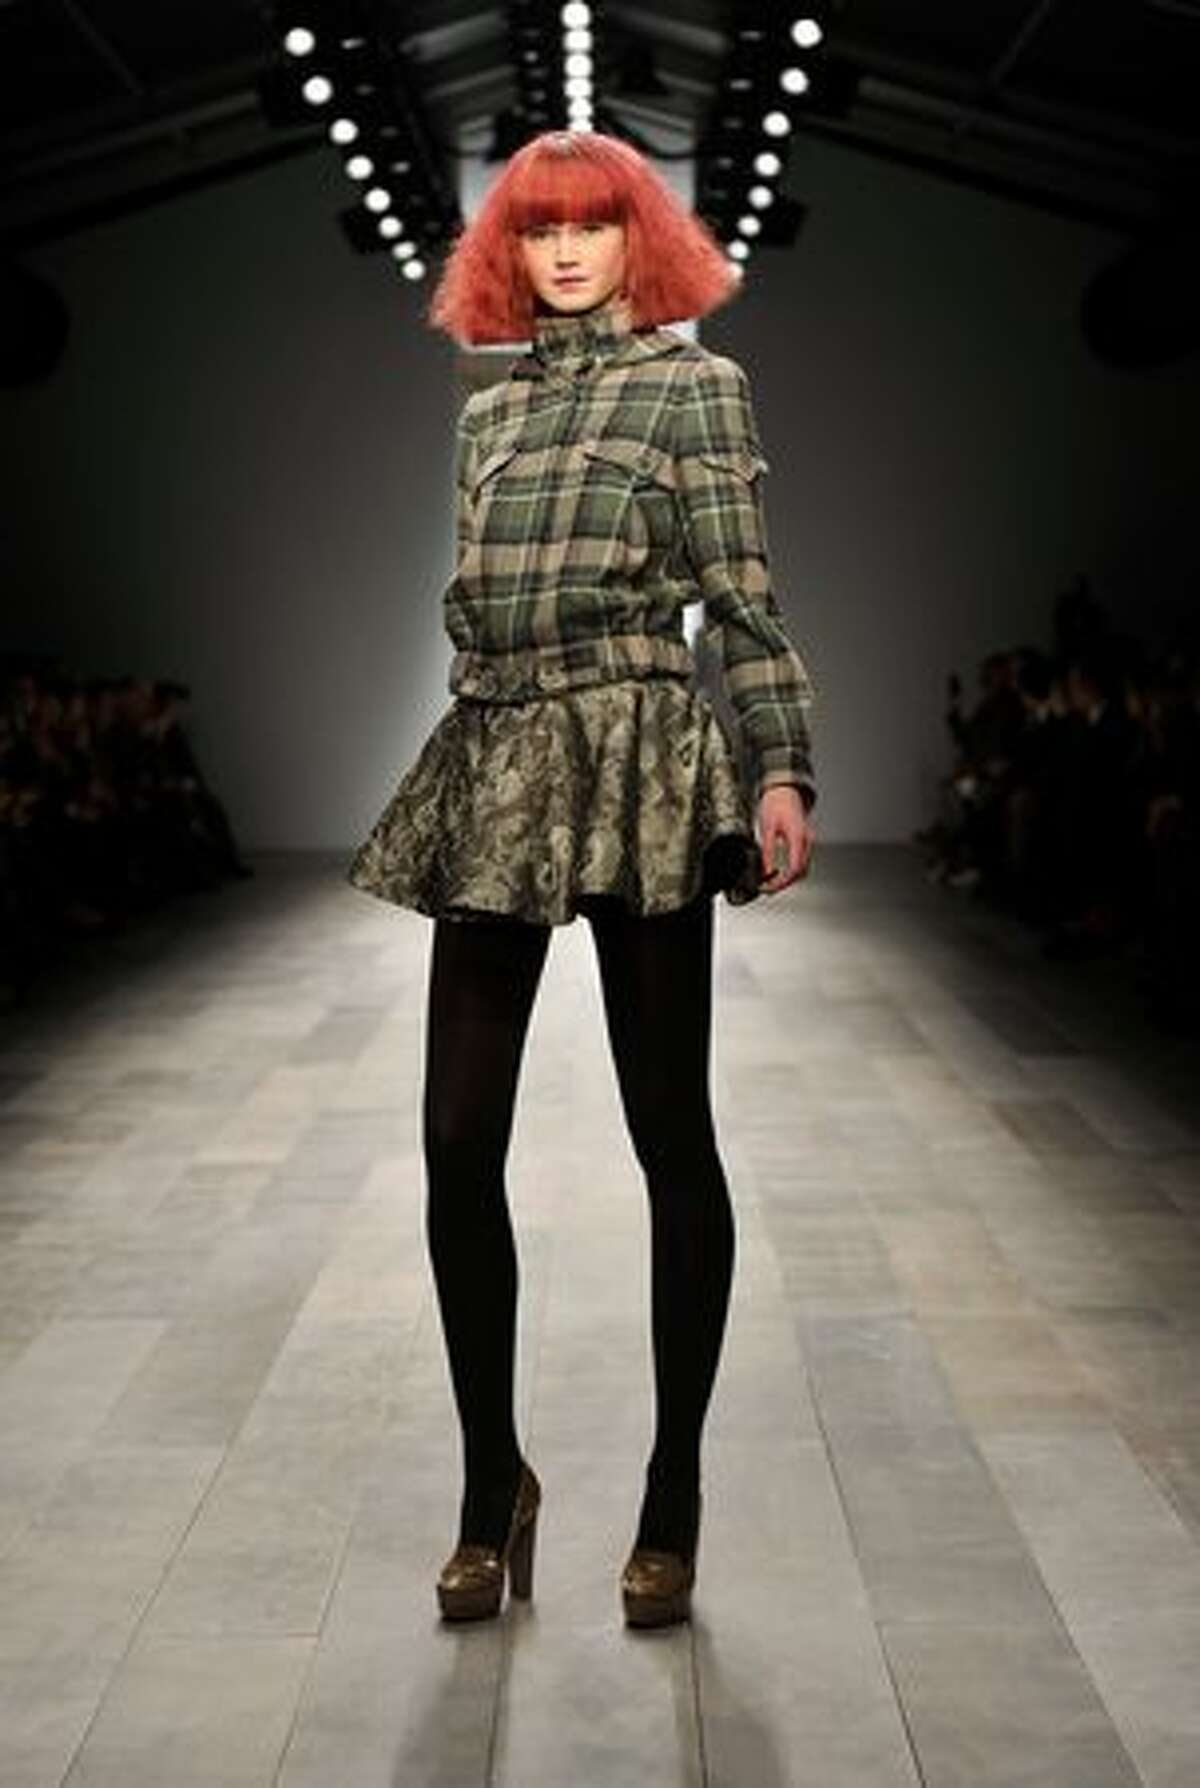 A model walks the runway at the Paul Costelloe show at the first day of London Fashion Week Autumn/Winter 2011 at Somerset House in London on Friday, Feb. 18, 2011.